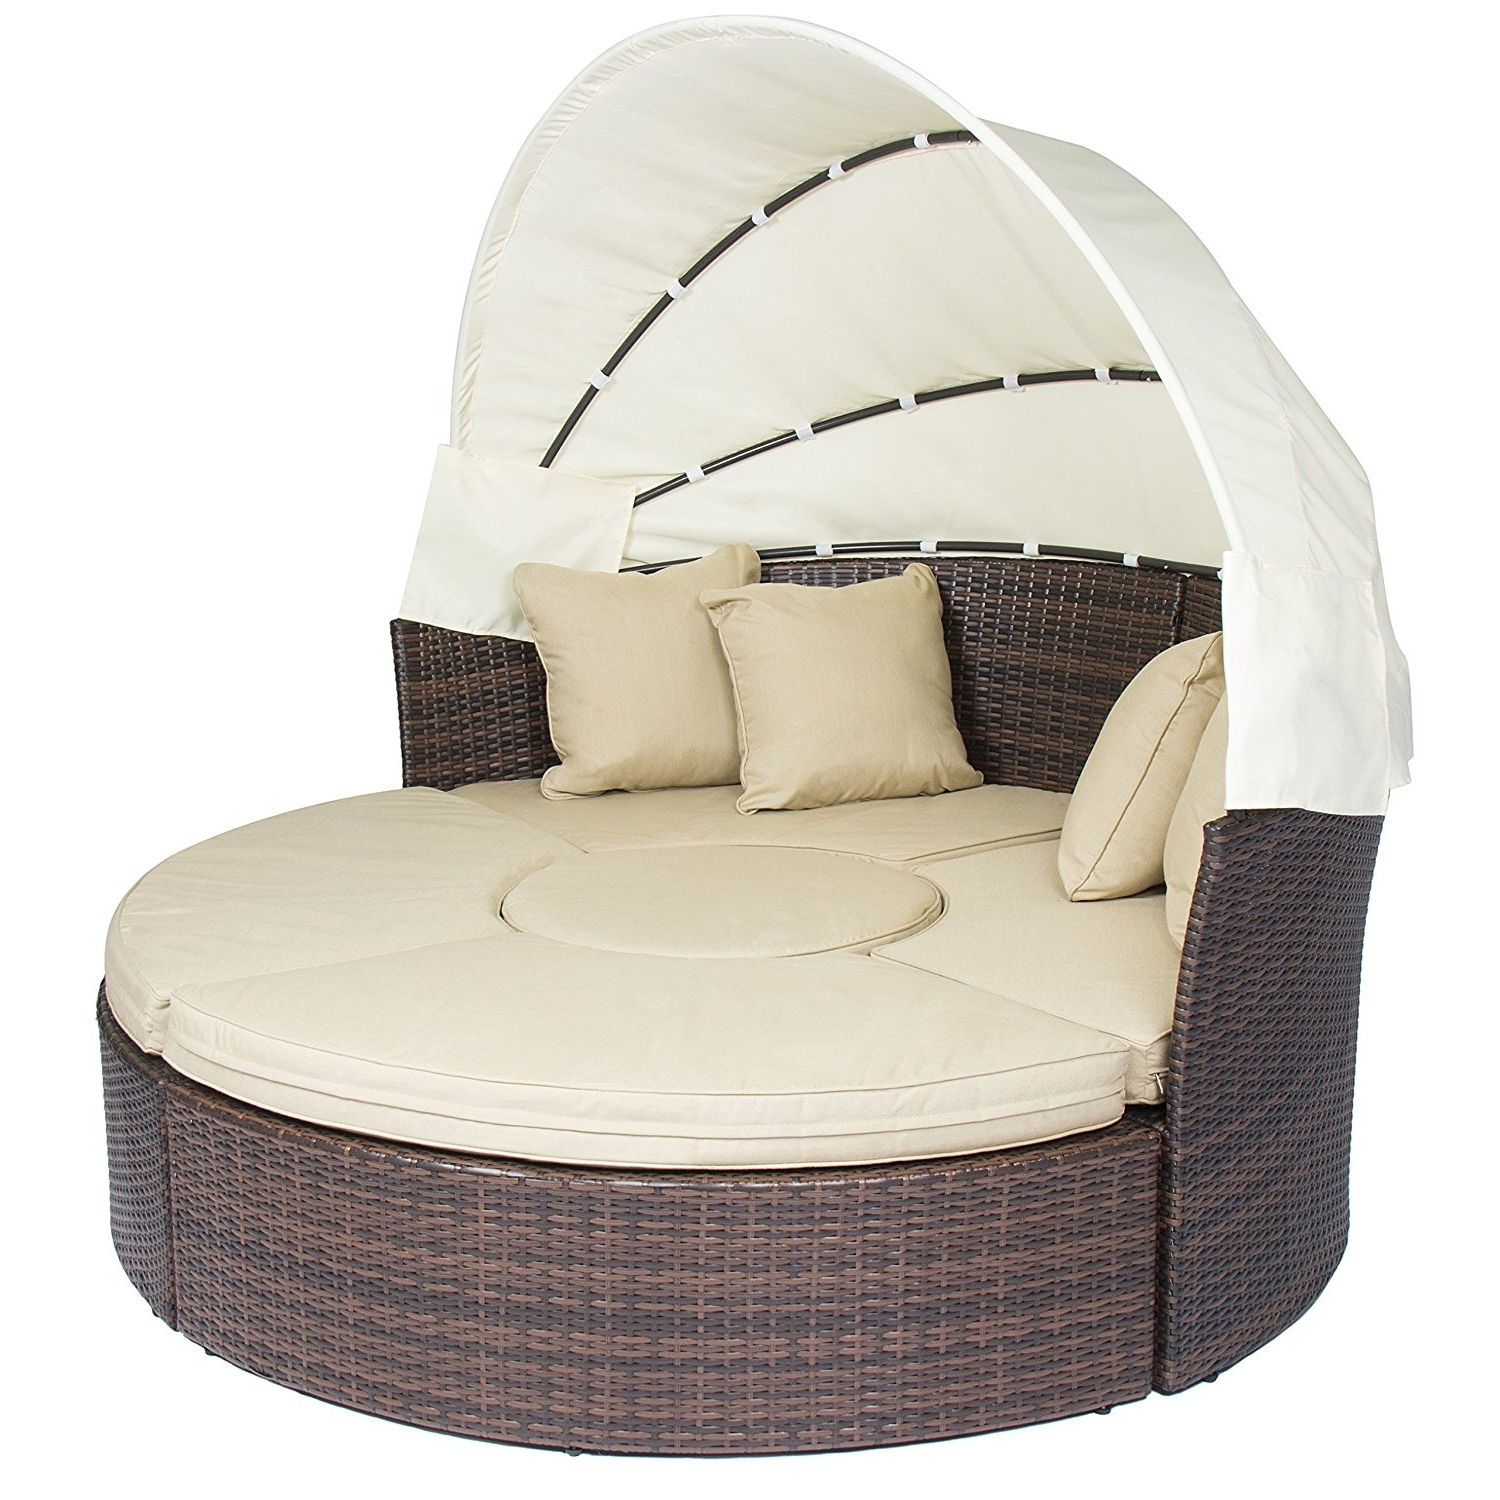 Amazon : Outdoor Patio Sofa Furniture Round Retractable Canopy Regarding Fashionable Outdoor Sofa Chairs (View 1 of 15)